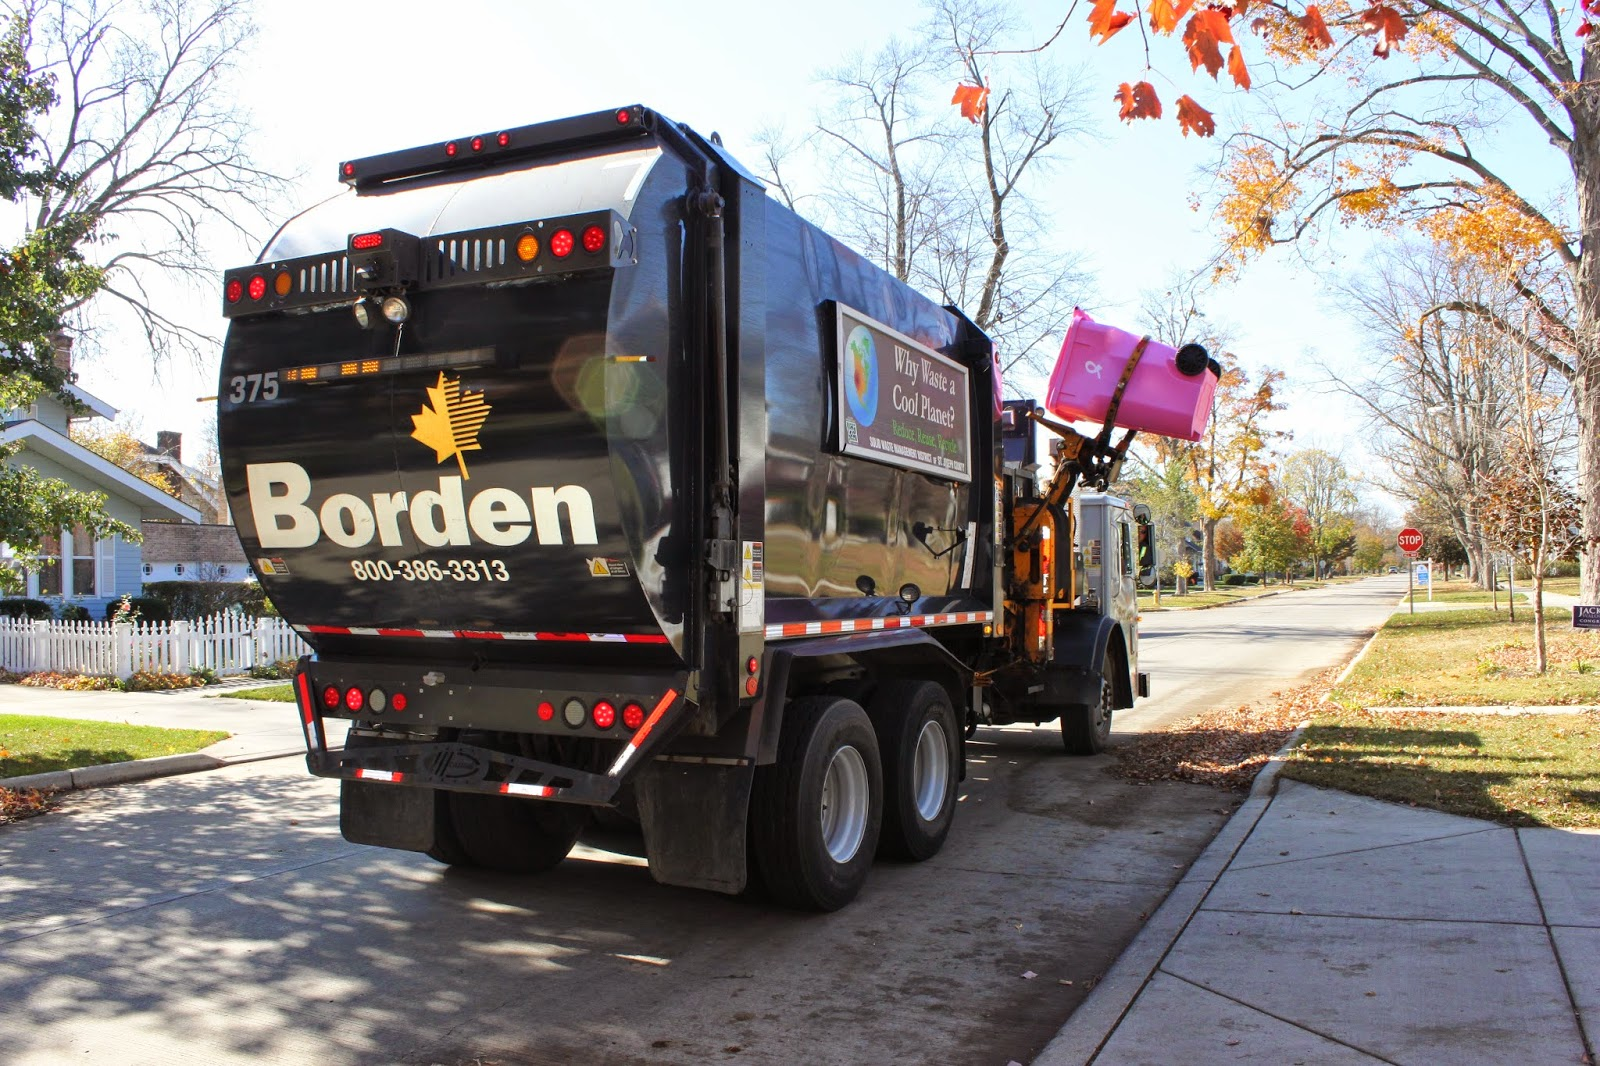 Borden Truck Picking up Cart.jpg